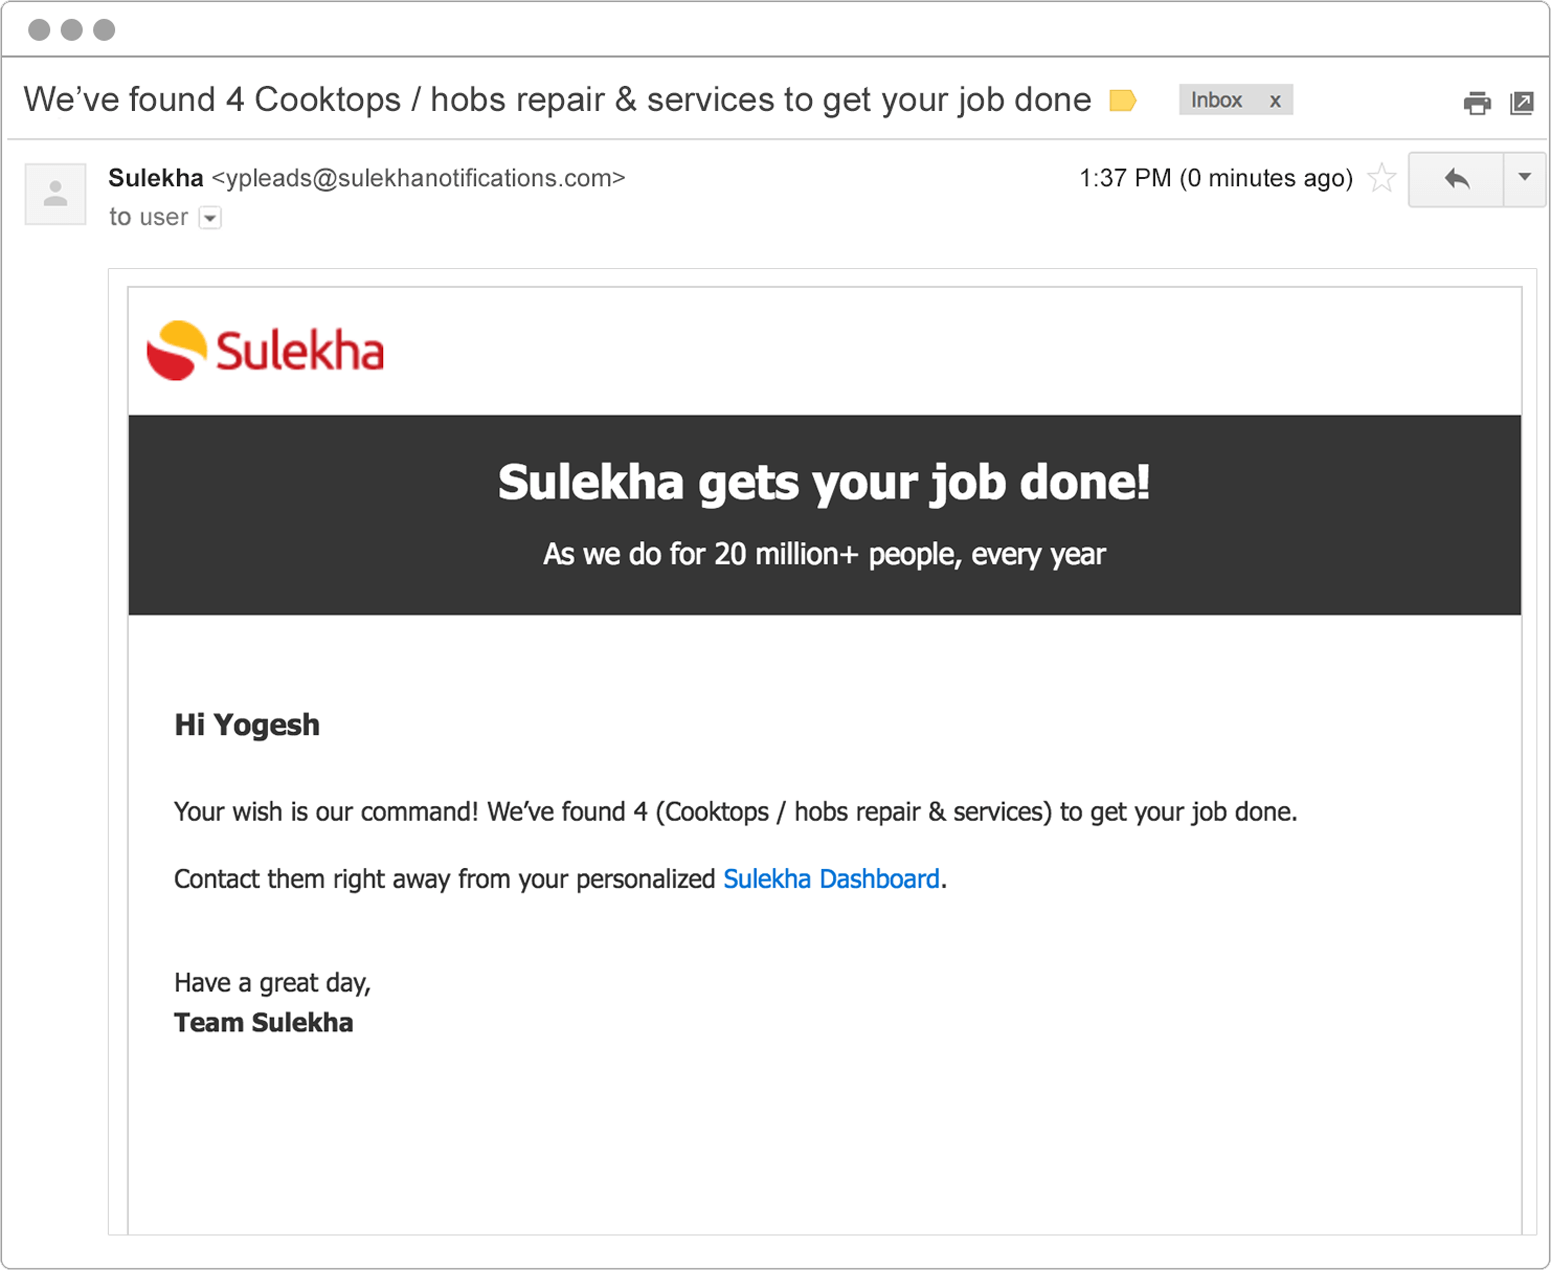 Retargeting email example from Sulekha